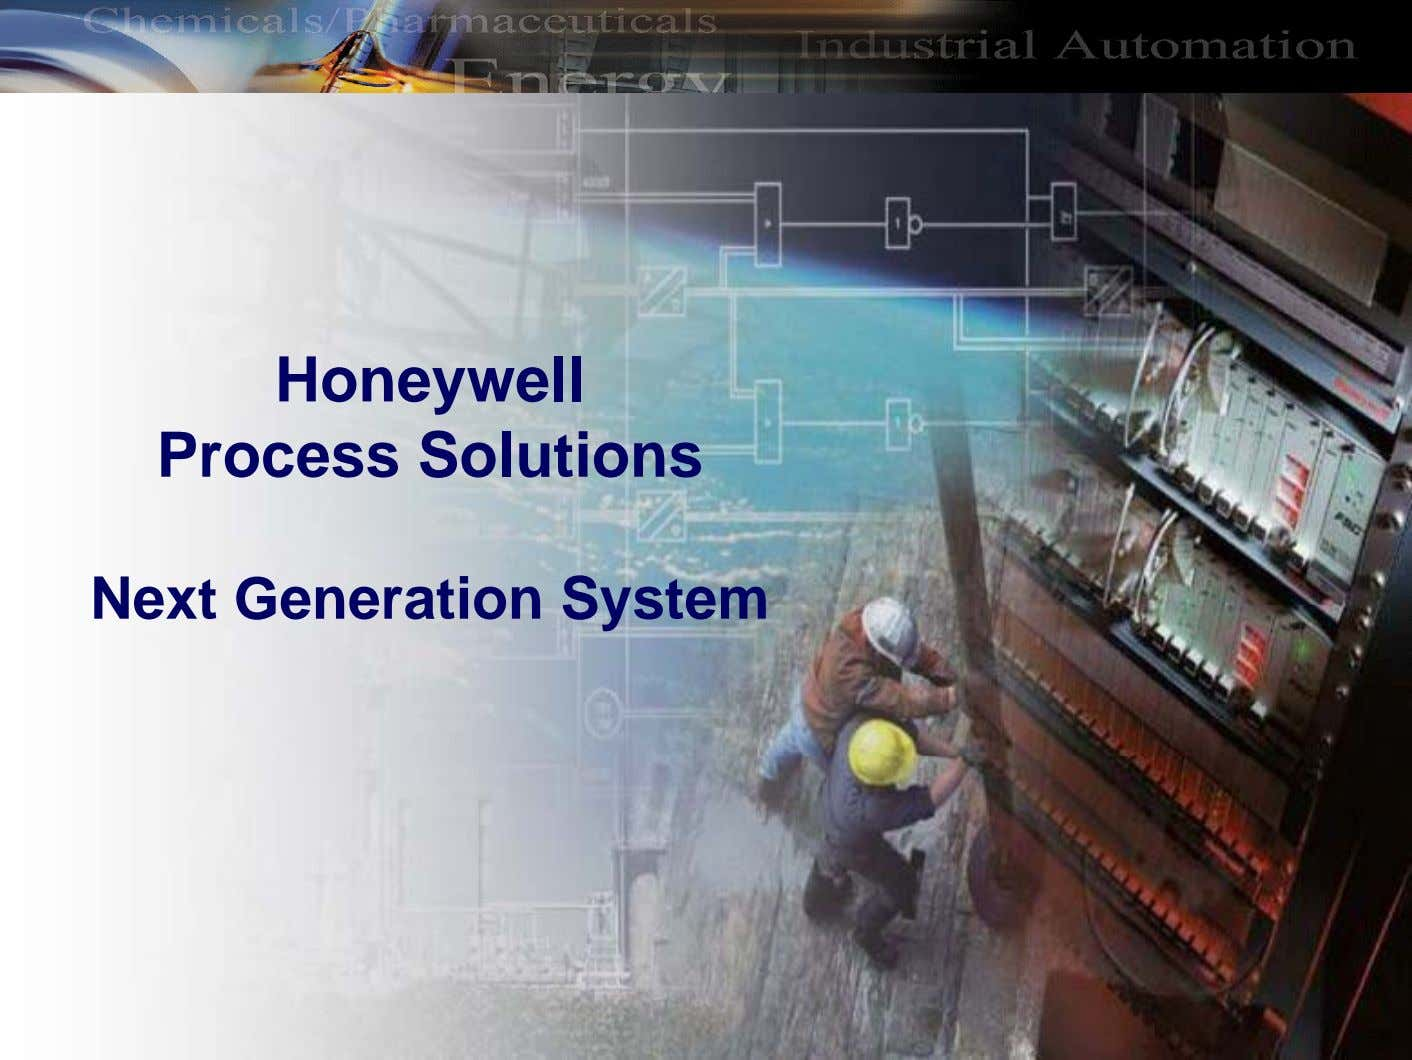 Honeywell Process Solutions Next Generation System 1